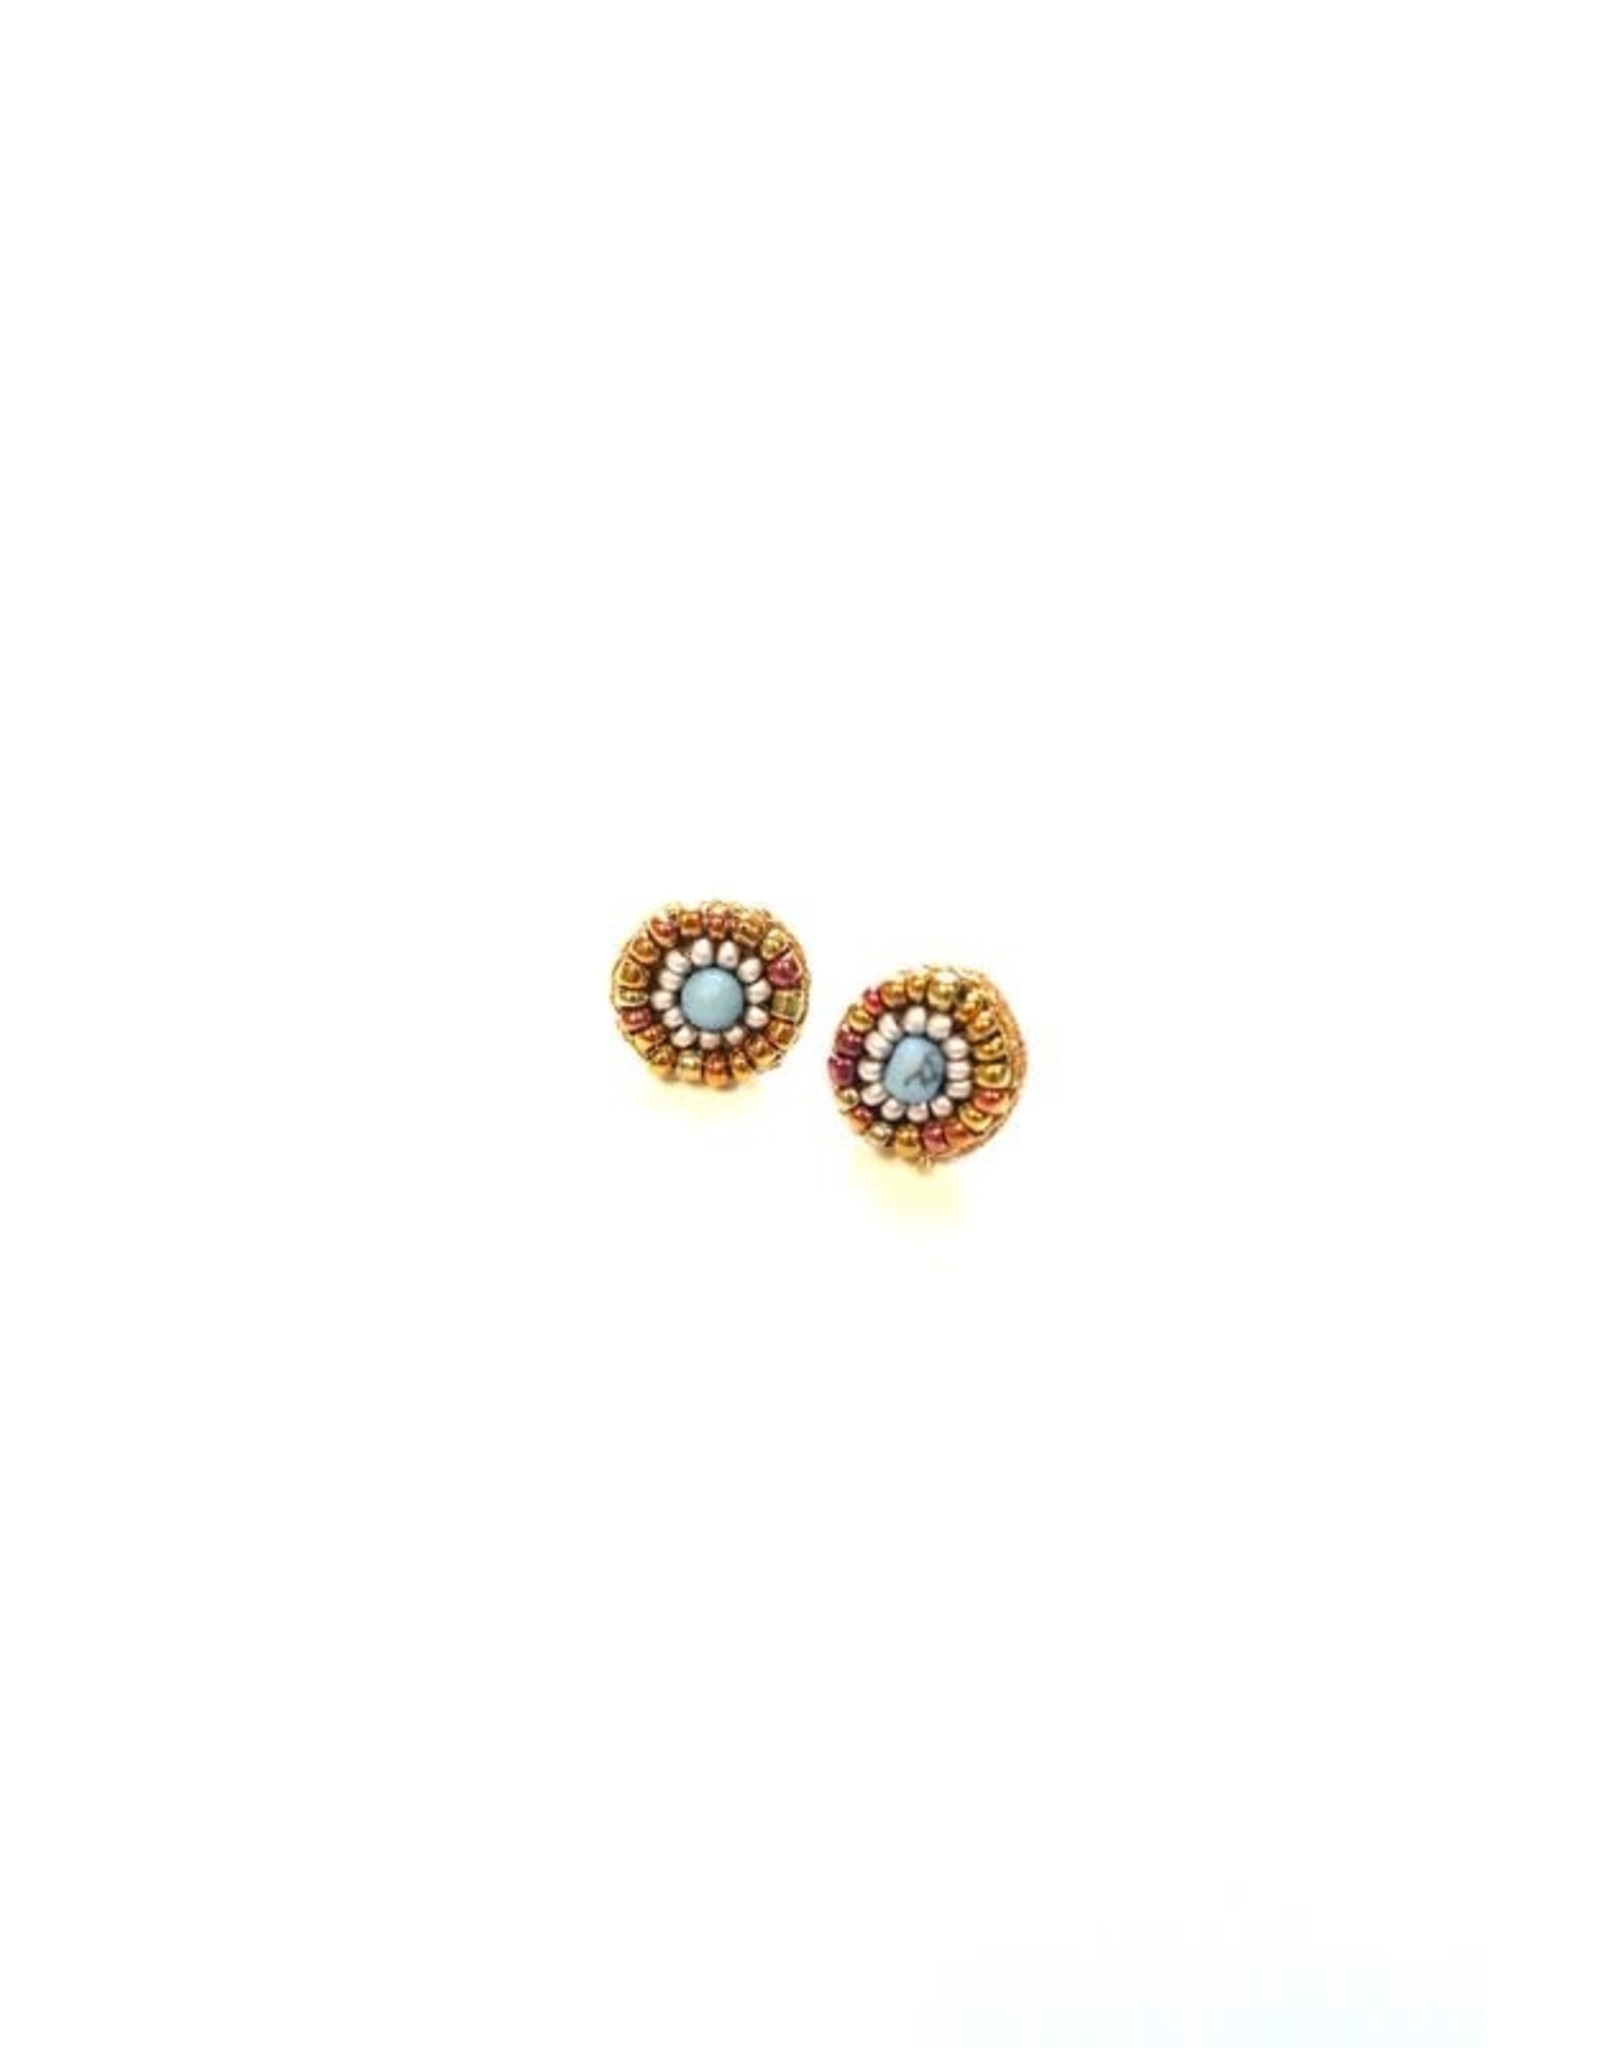 GOLD TURQ BEADED STUD EARRING E-223